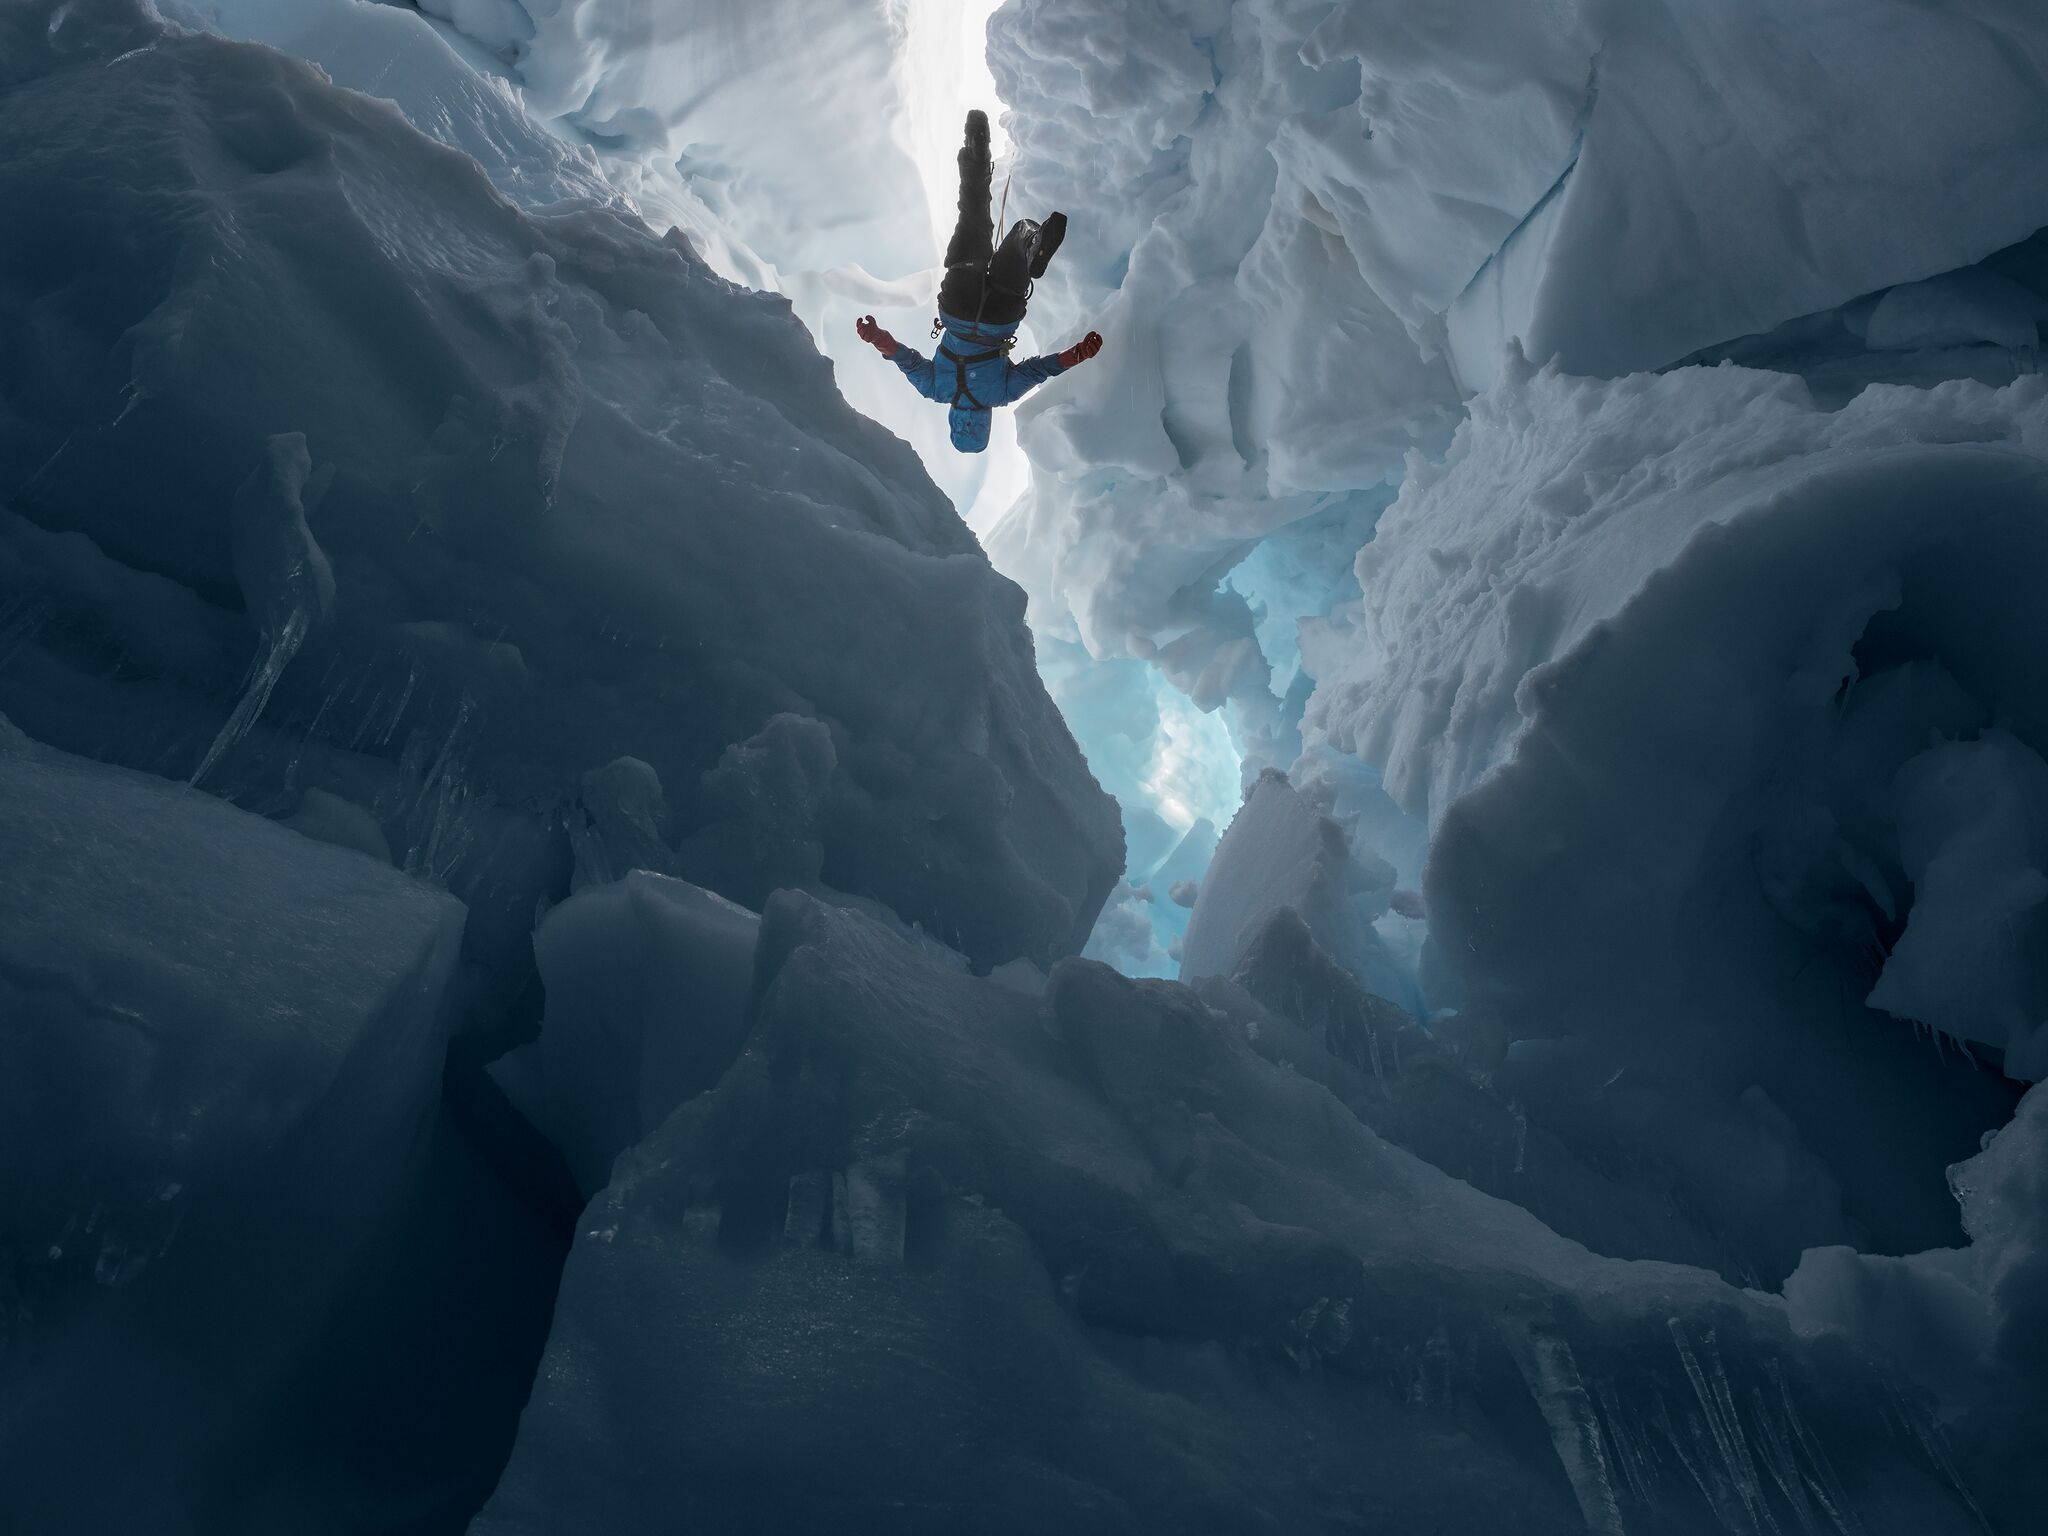 - Kenzie inside a Melting Glacier, Juneau Icefield Research Program, Alaska © Lucas Foglia. Courtes